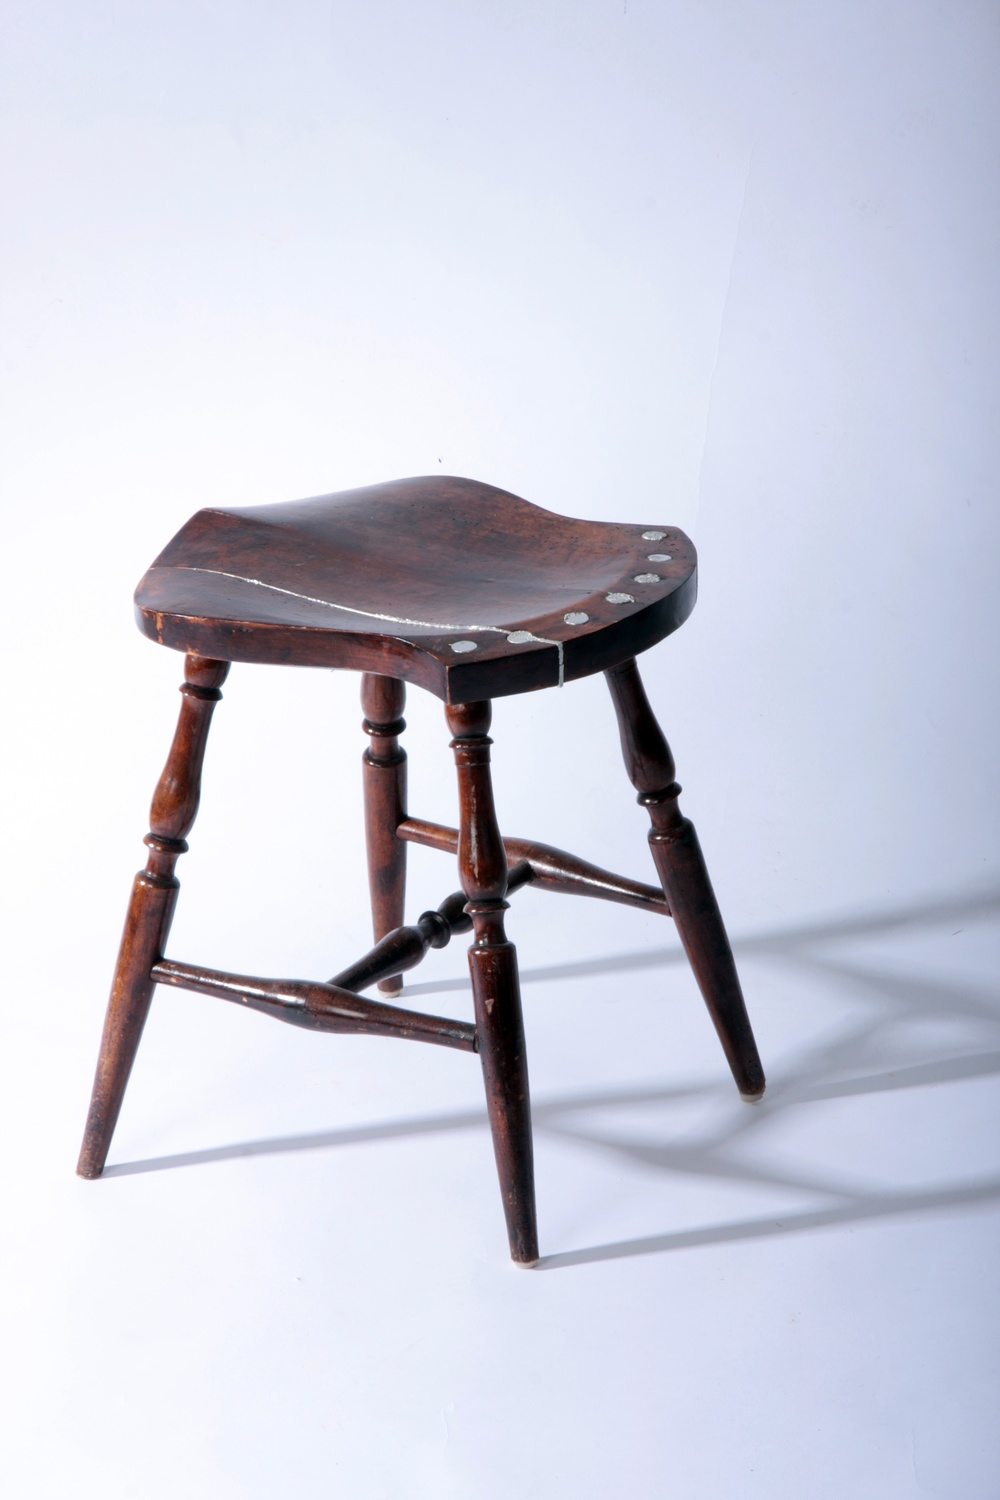 The brown chair.jpg